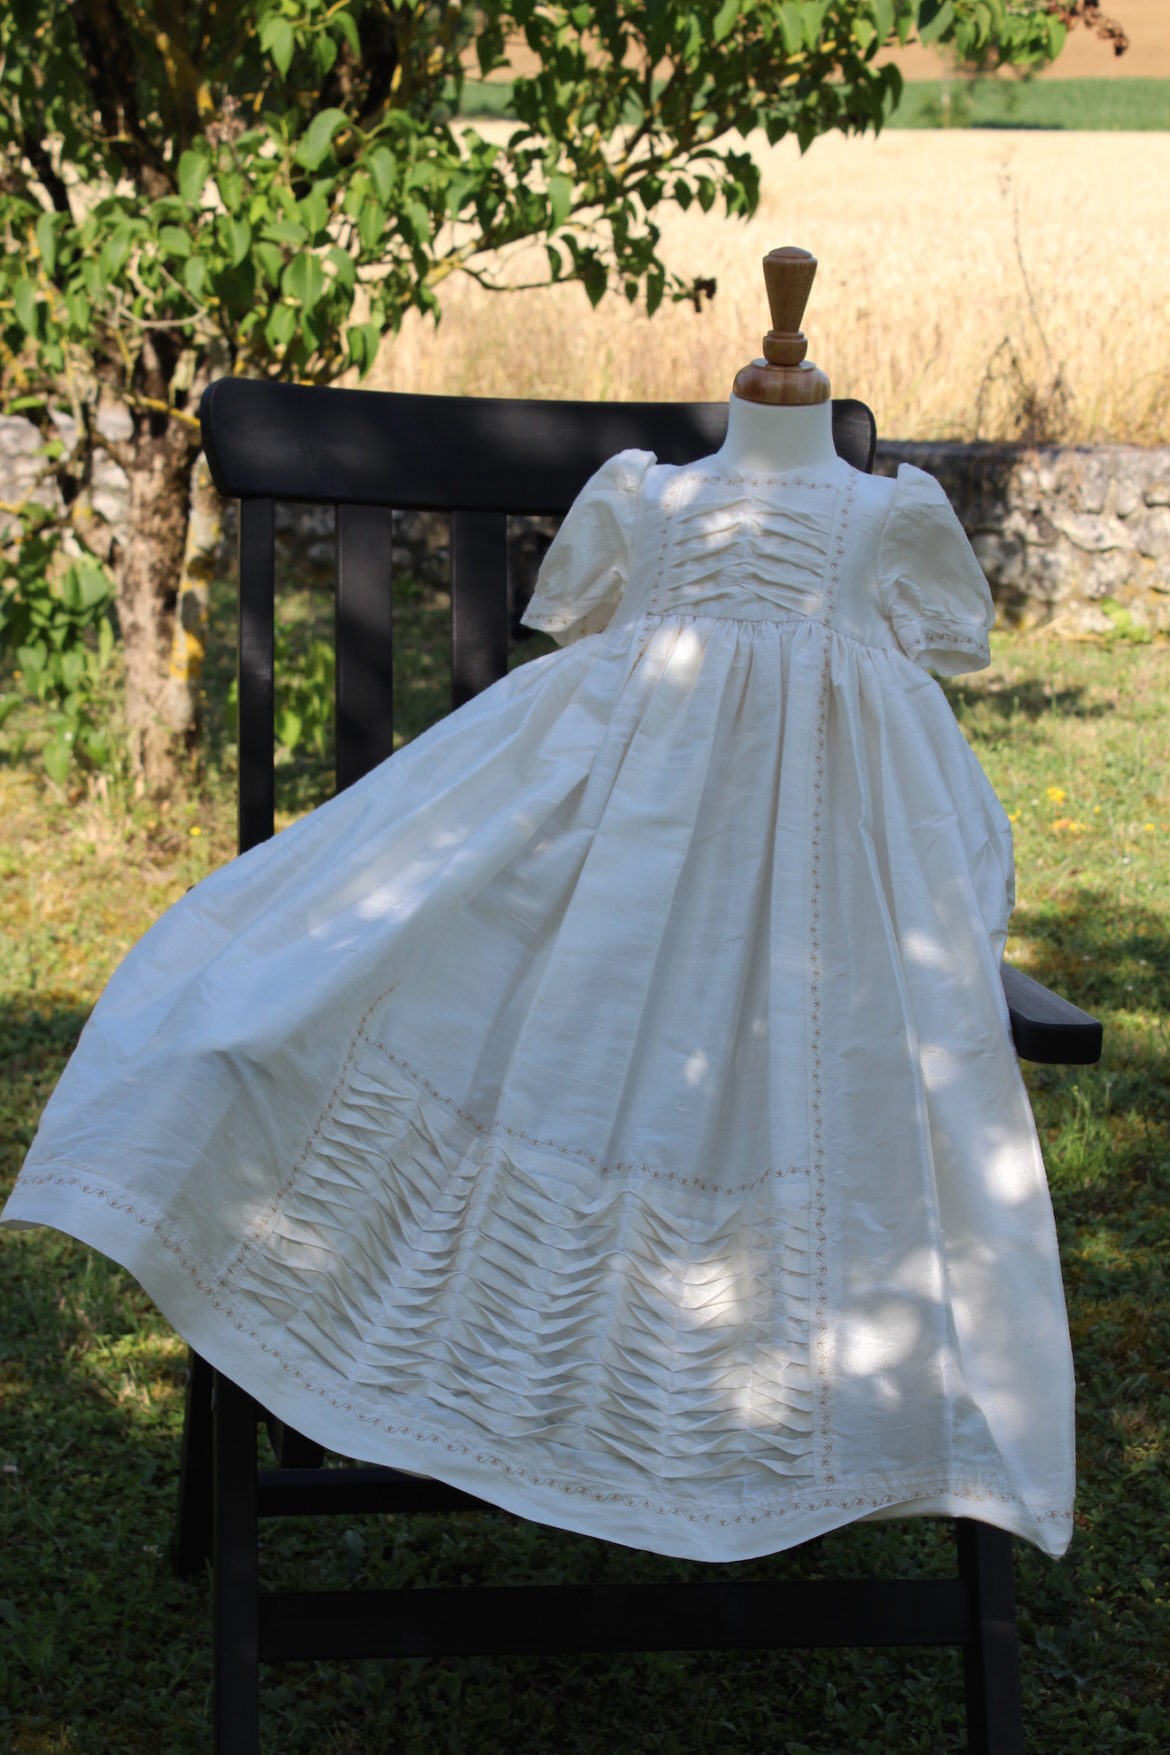 """6a614b2c97c28 For 12 years I ran my own business called """"Spangles Christening Wear""""… If  you have some experience of sewing, you can make an heirloom Christening  outfit, ..."""